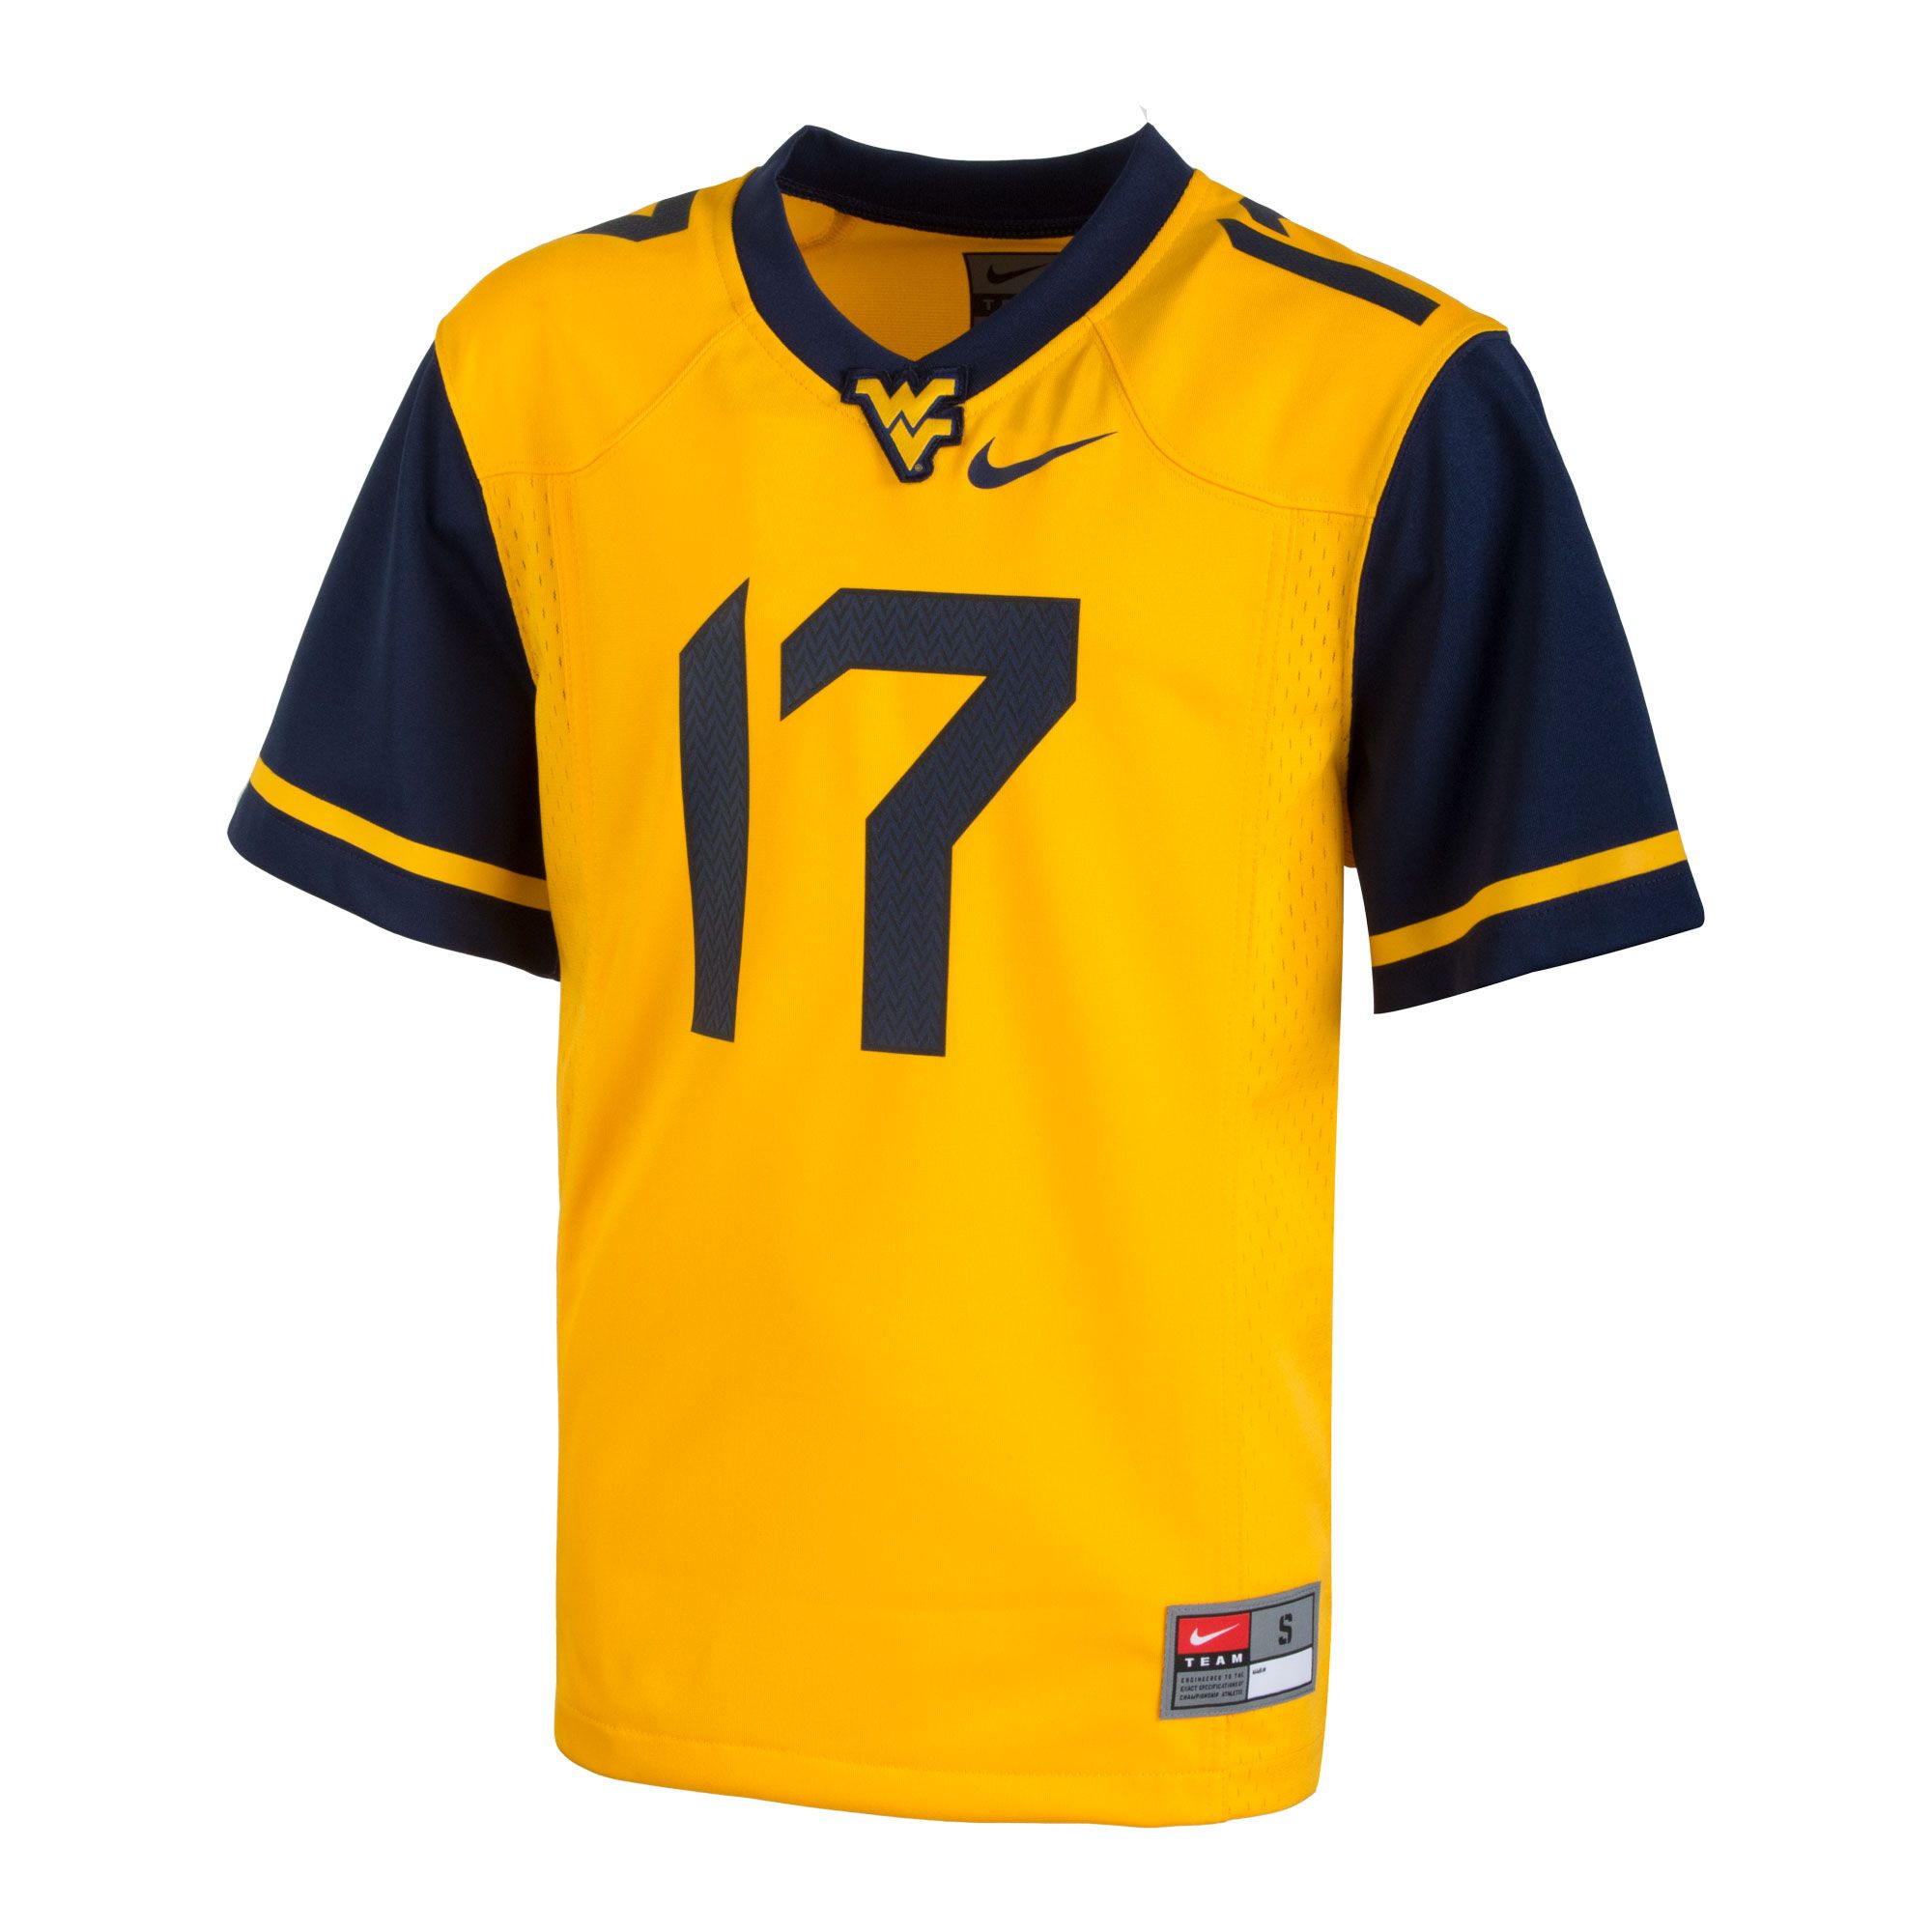 Your kids can show off their true blue and gold WVU